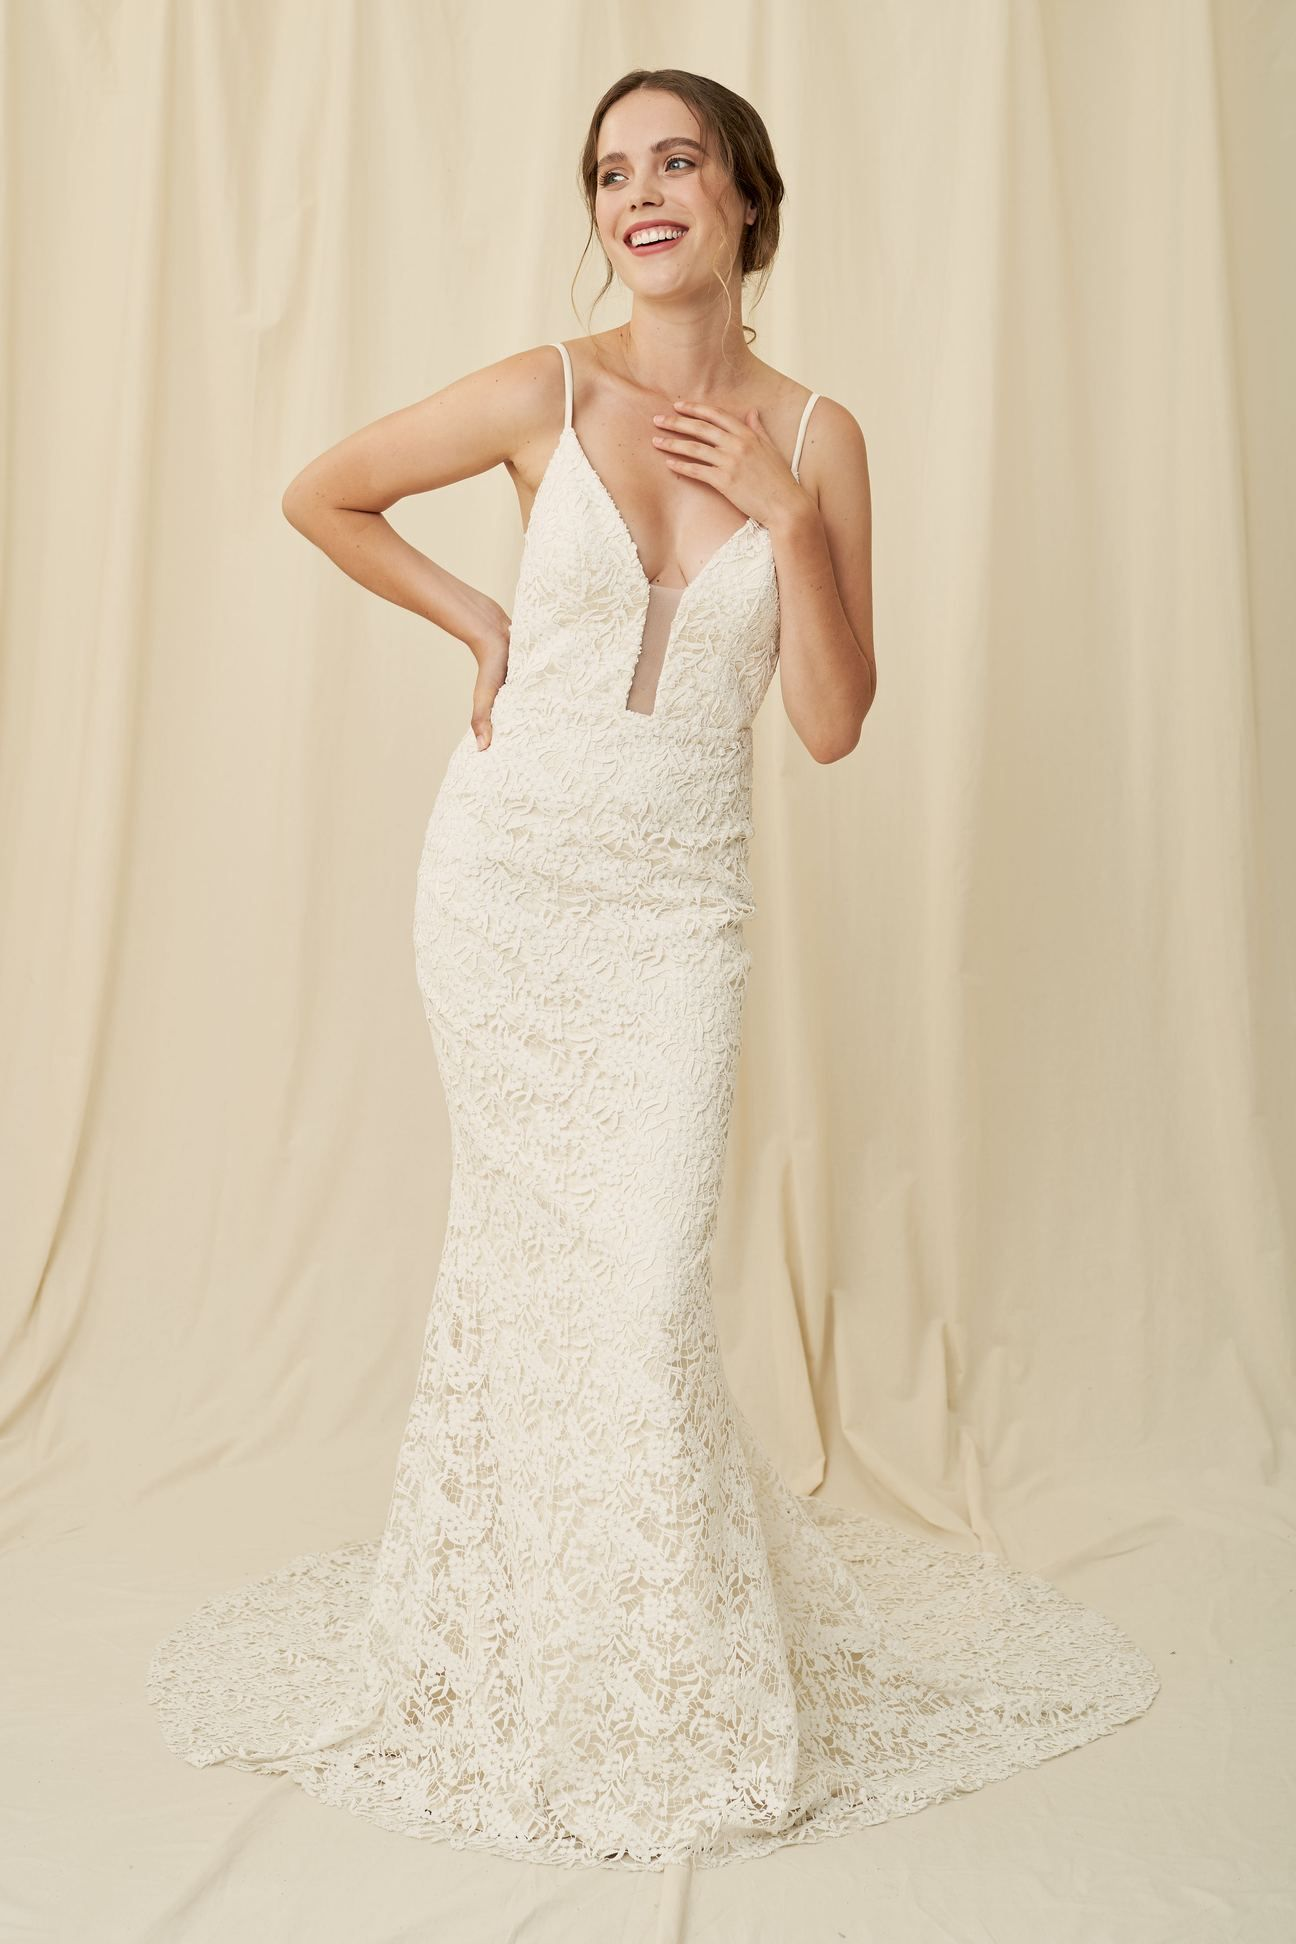 Rhodes Laudae A Botanical Lace Gown With Long Train Available In Vancouver Calgary Weddings Wedding Dress Shopping Wedding Gowns Mermaid Bridal Dresses,Mens Dress Attire For Wedding